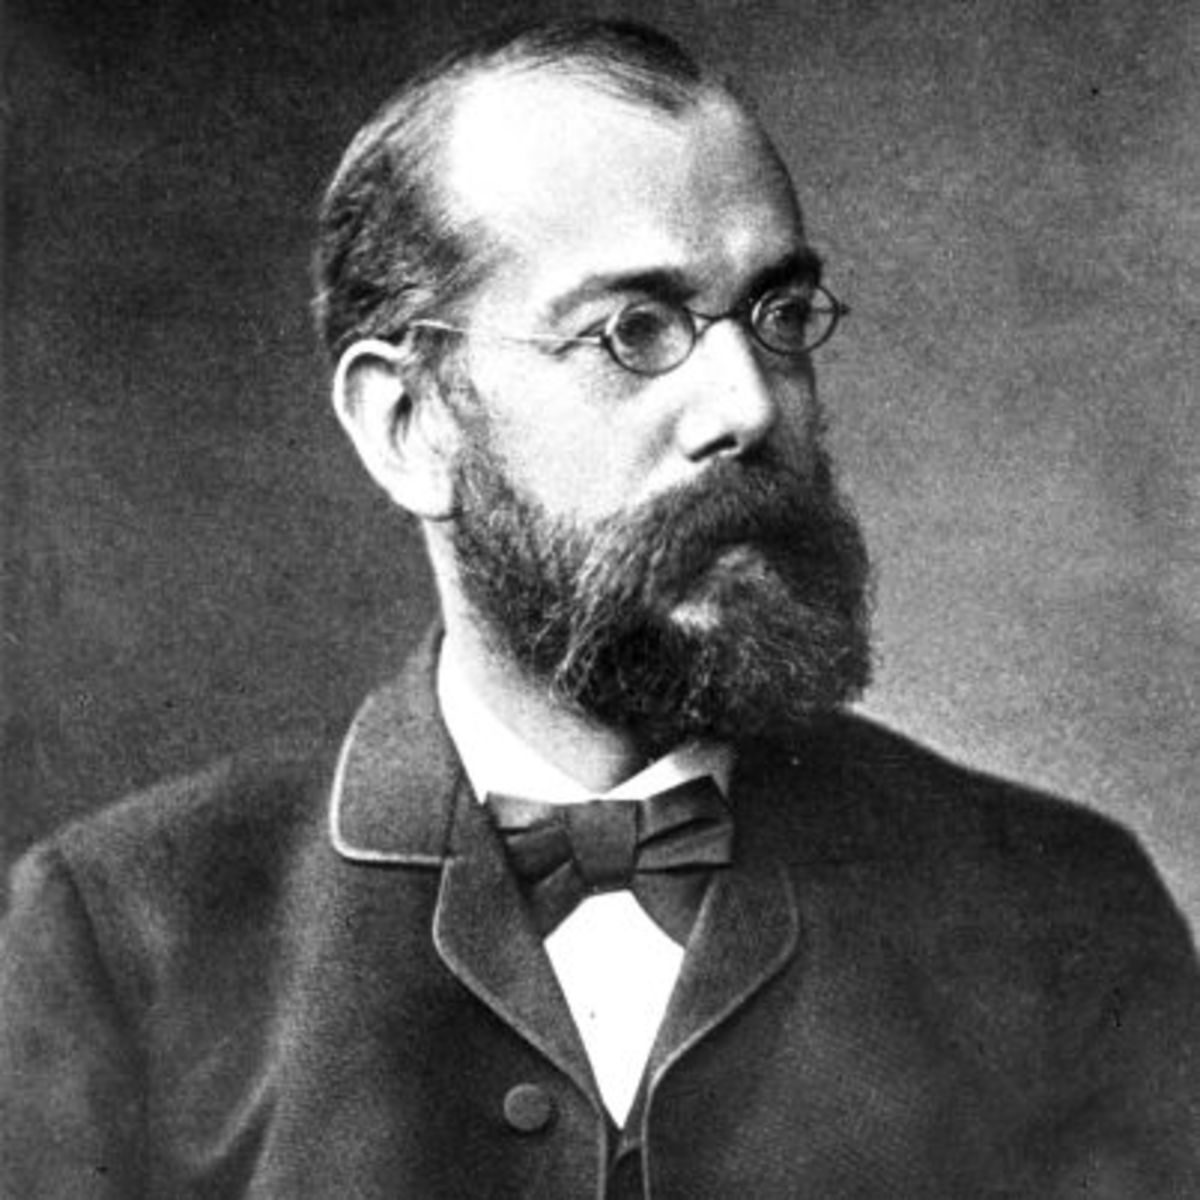 This is Robert Koch's reaction to the abuse of Koch's postulates by quacks